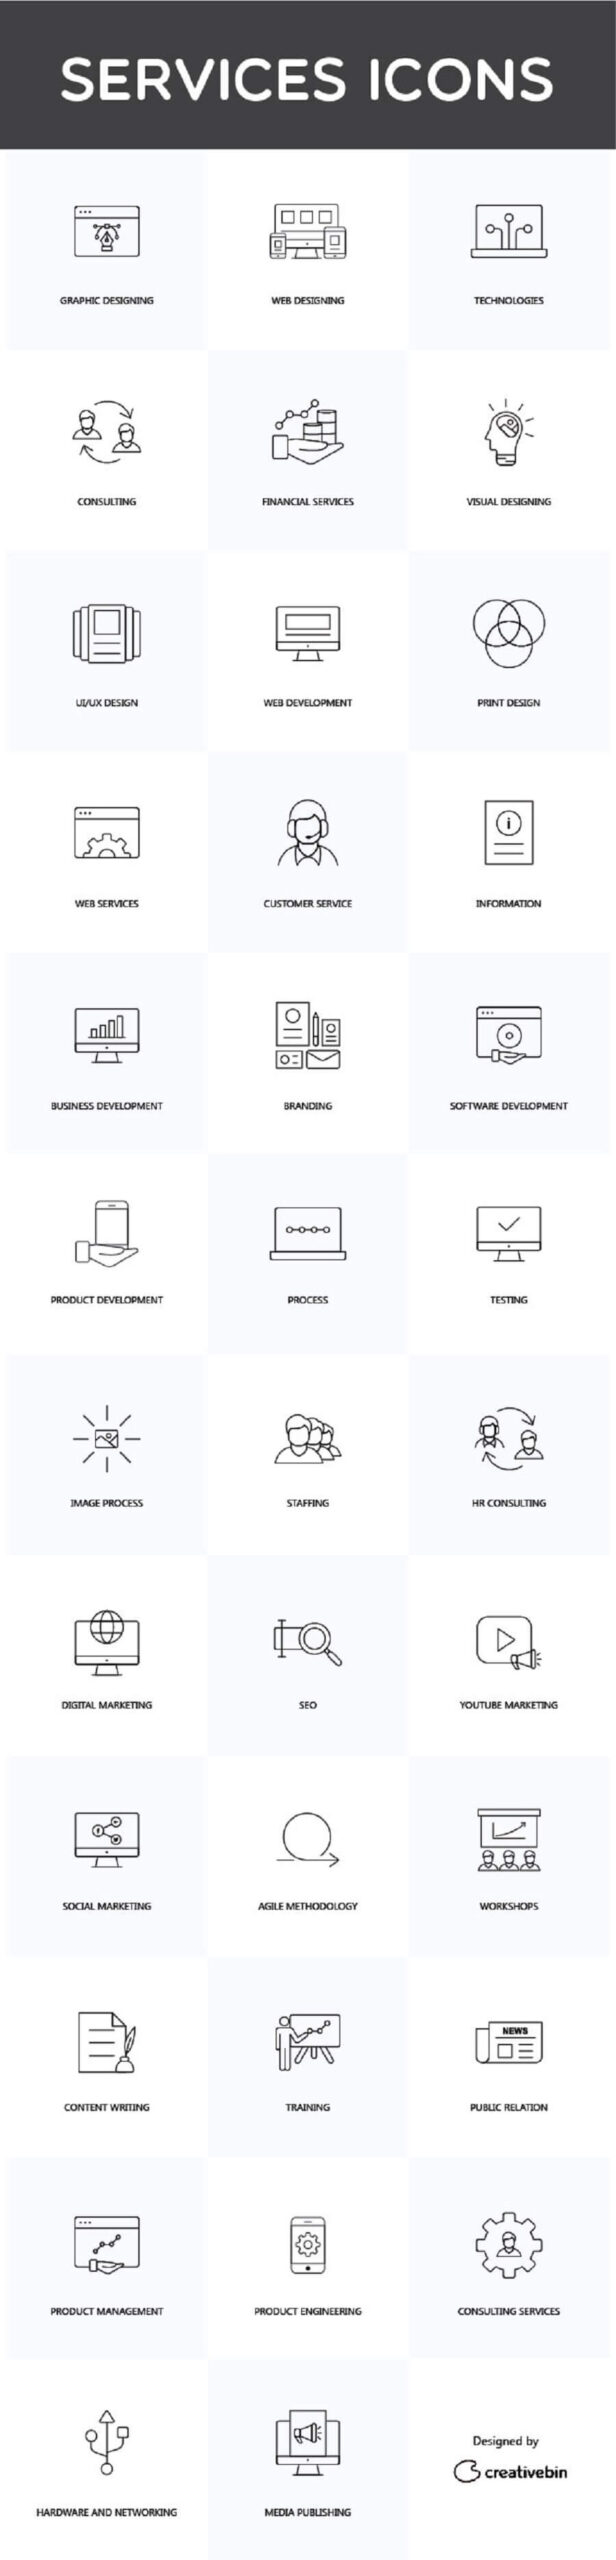 Free Attractive 35 Linear Services Vector Icons (1)